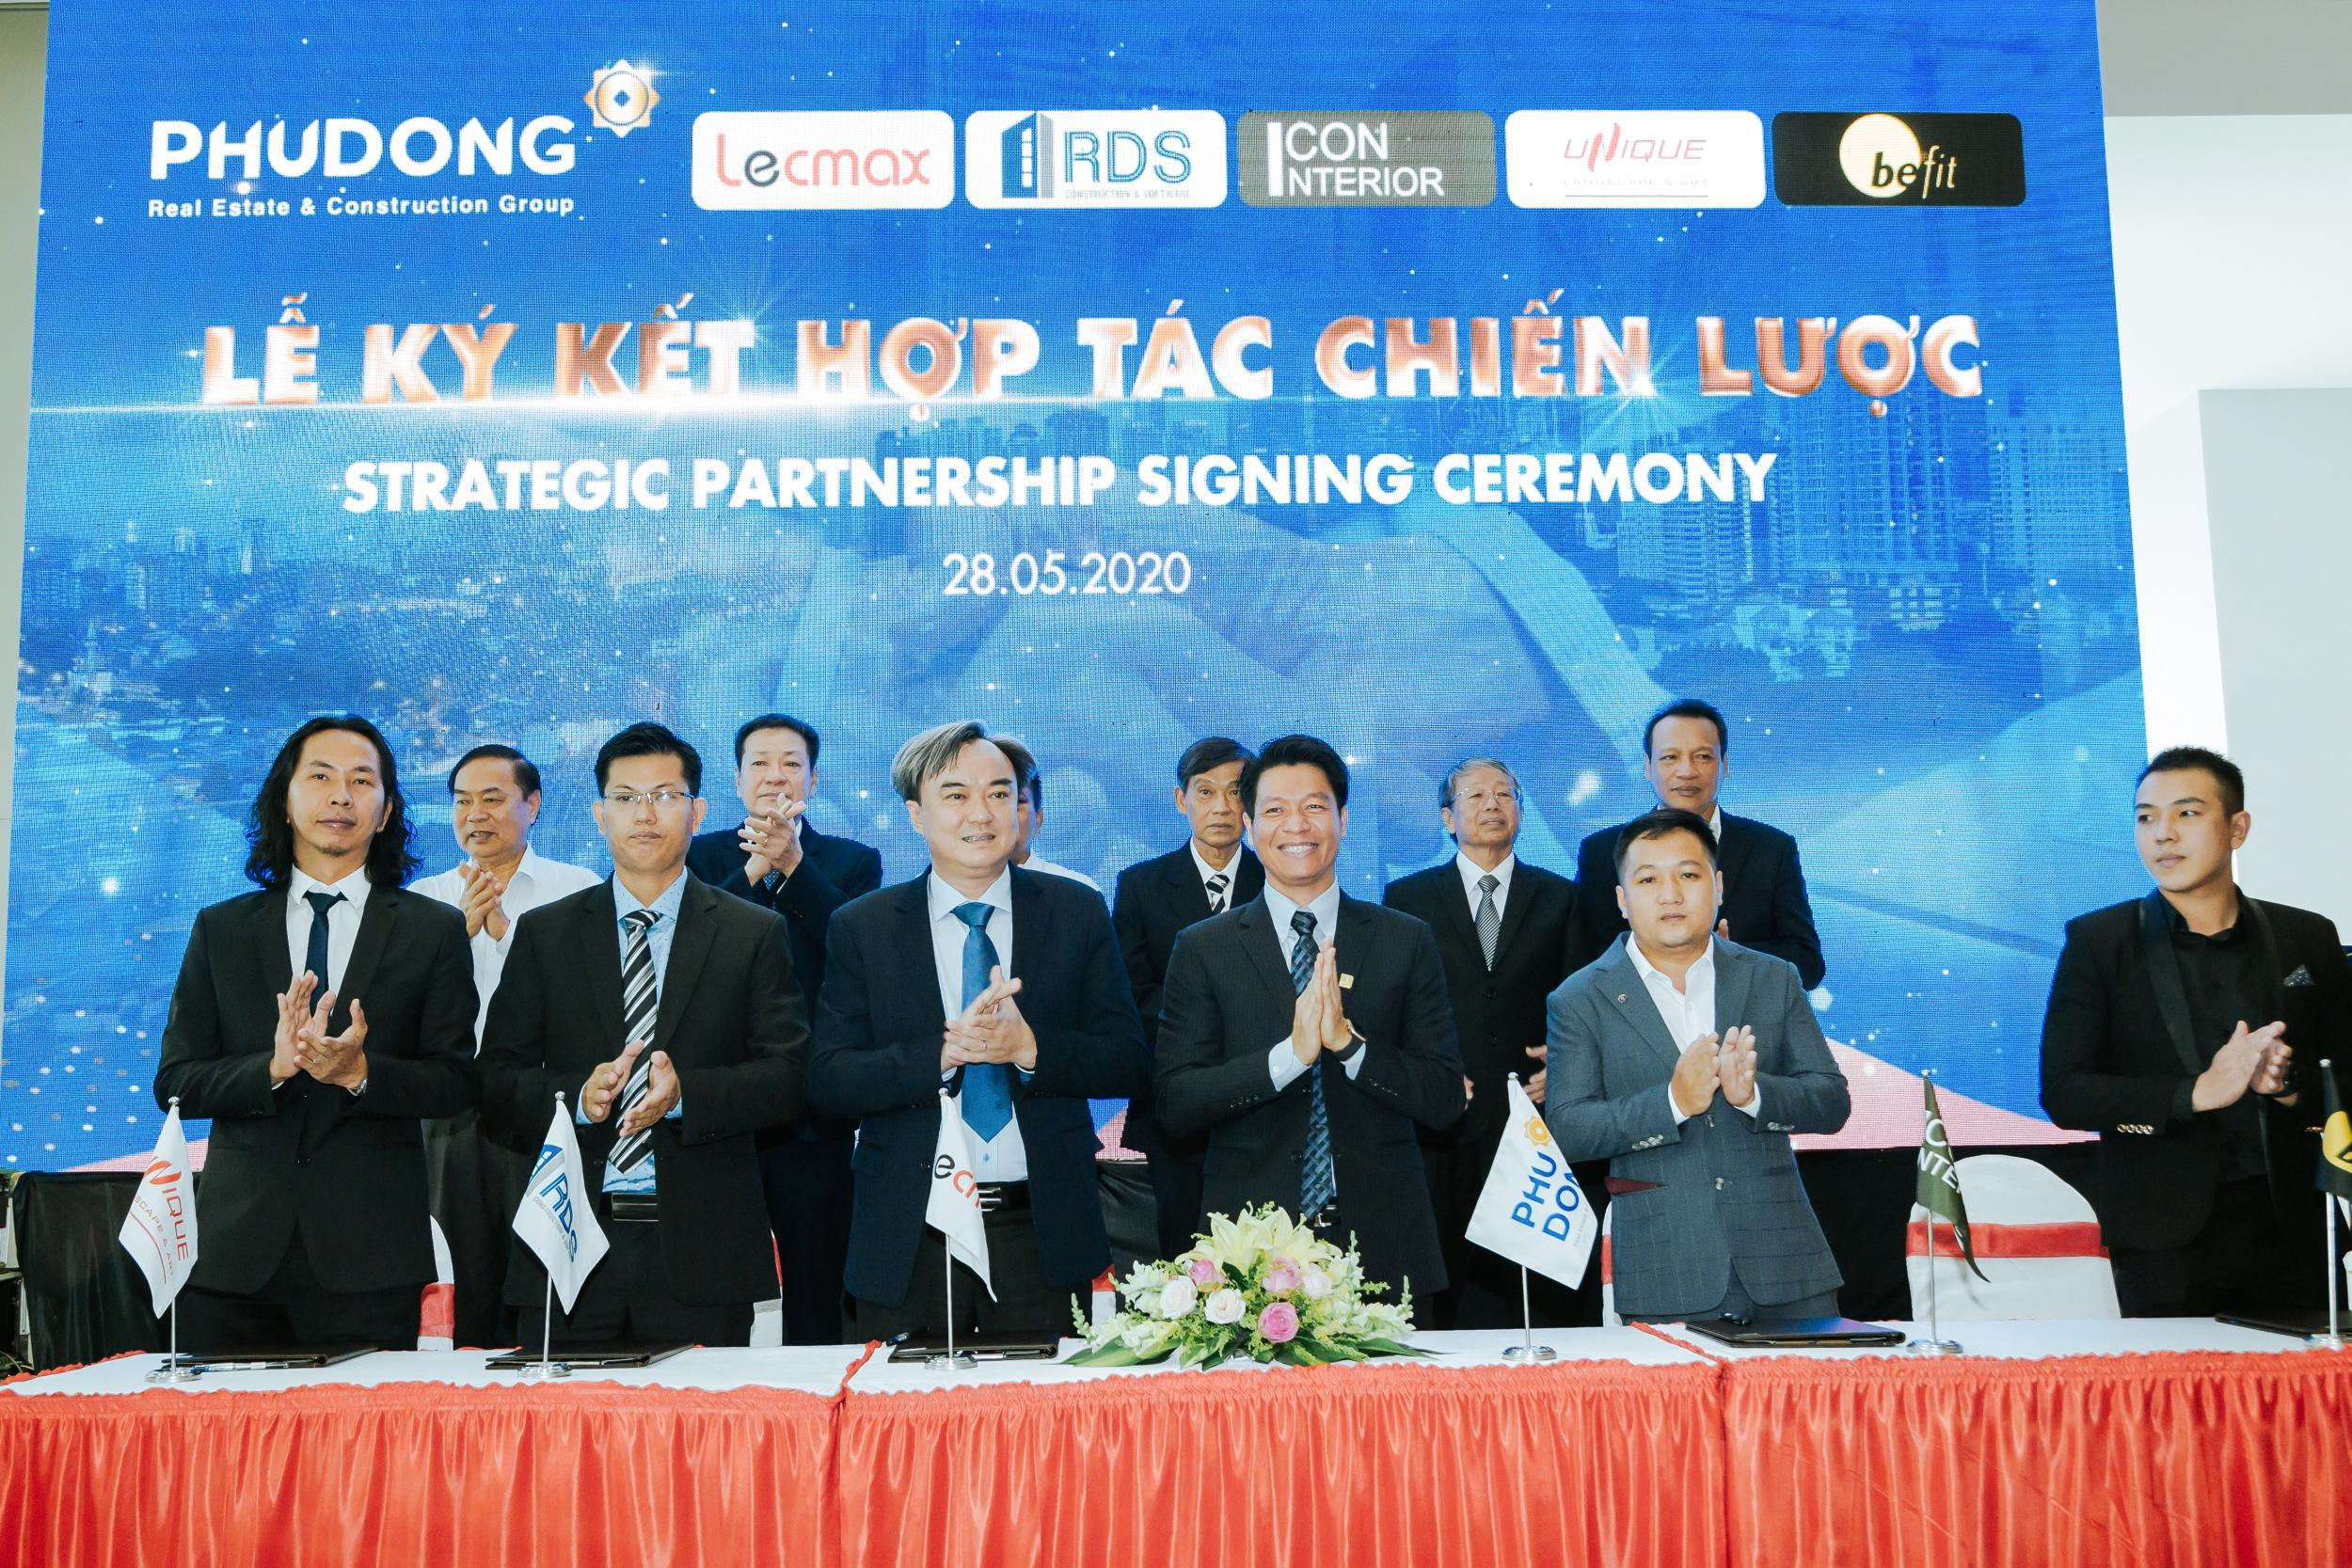 The signing ceremony of strategic cooperation with Phu Dong Group